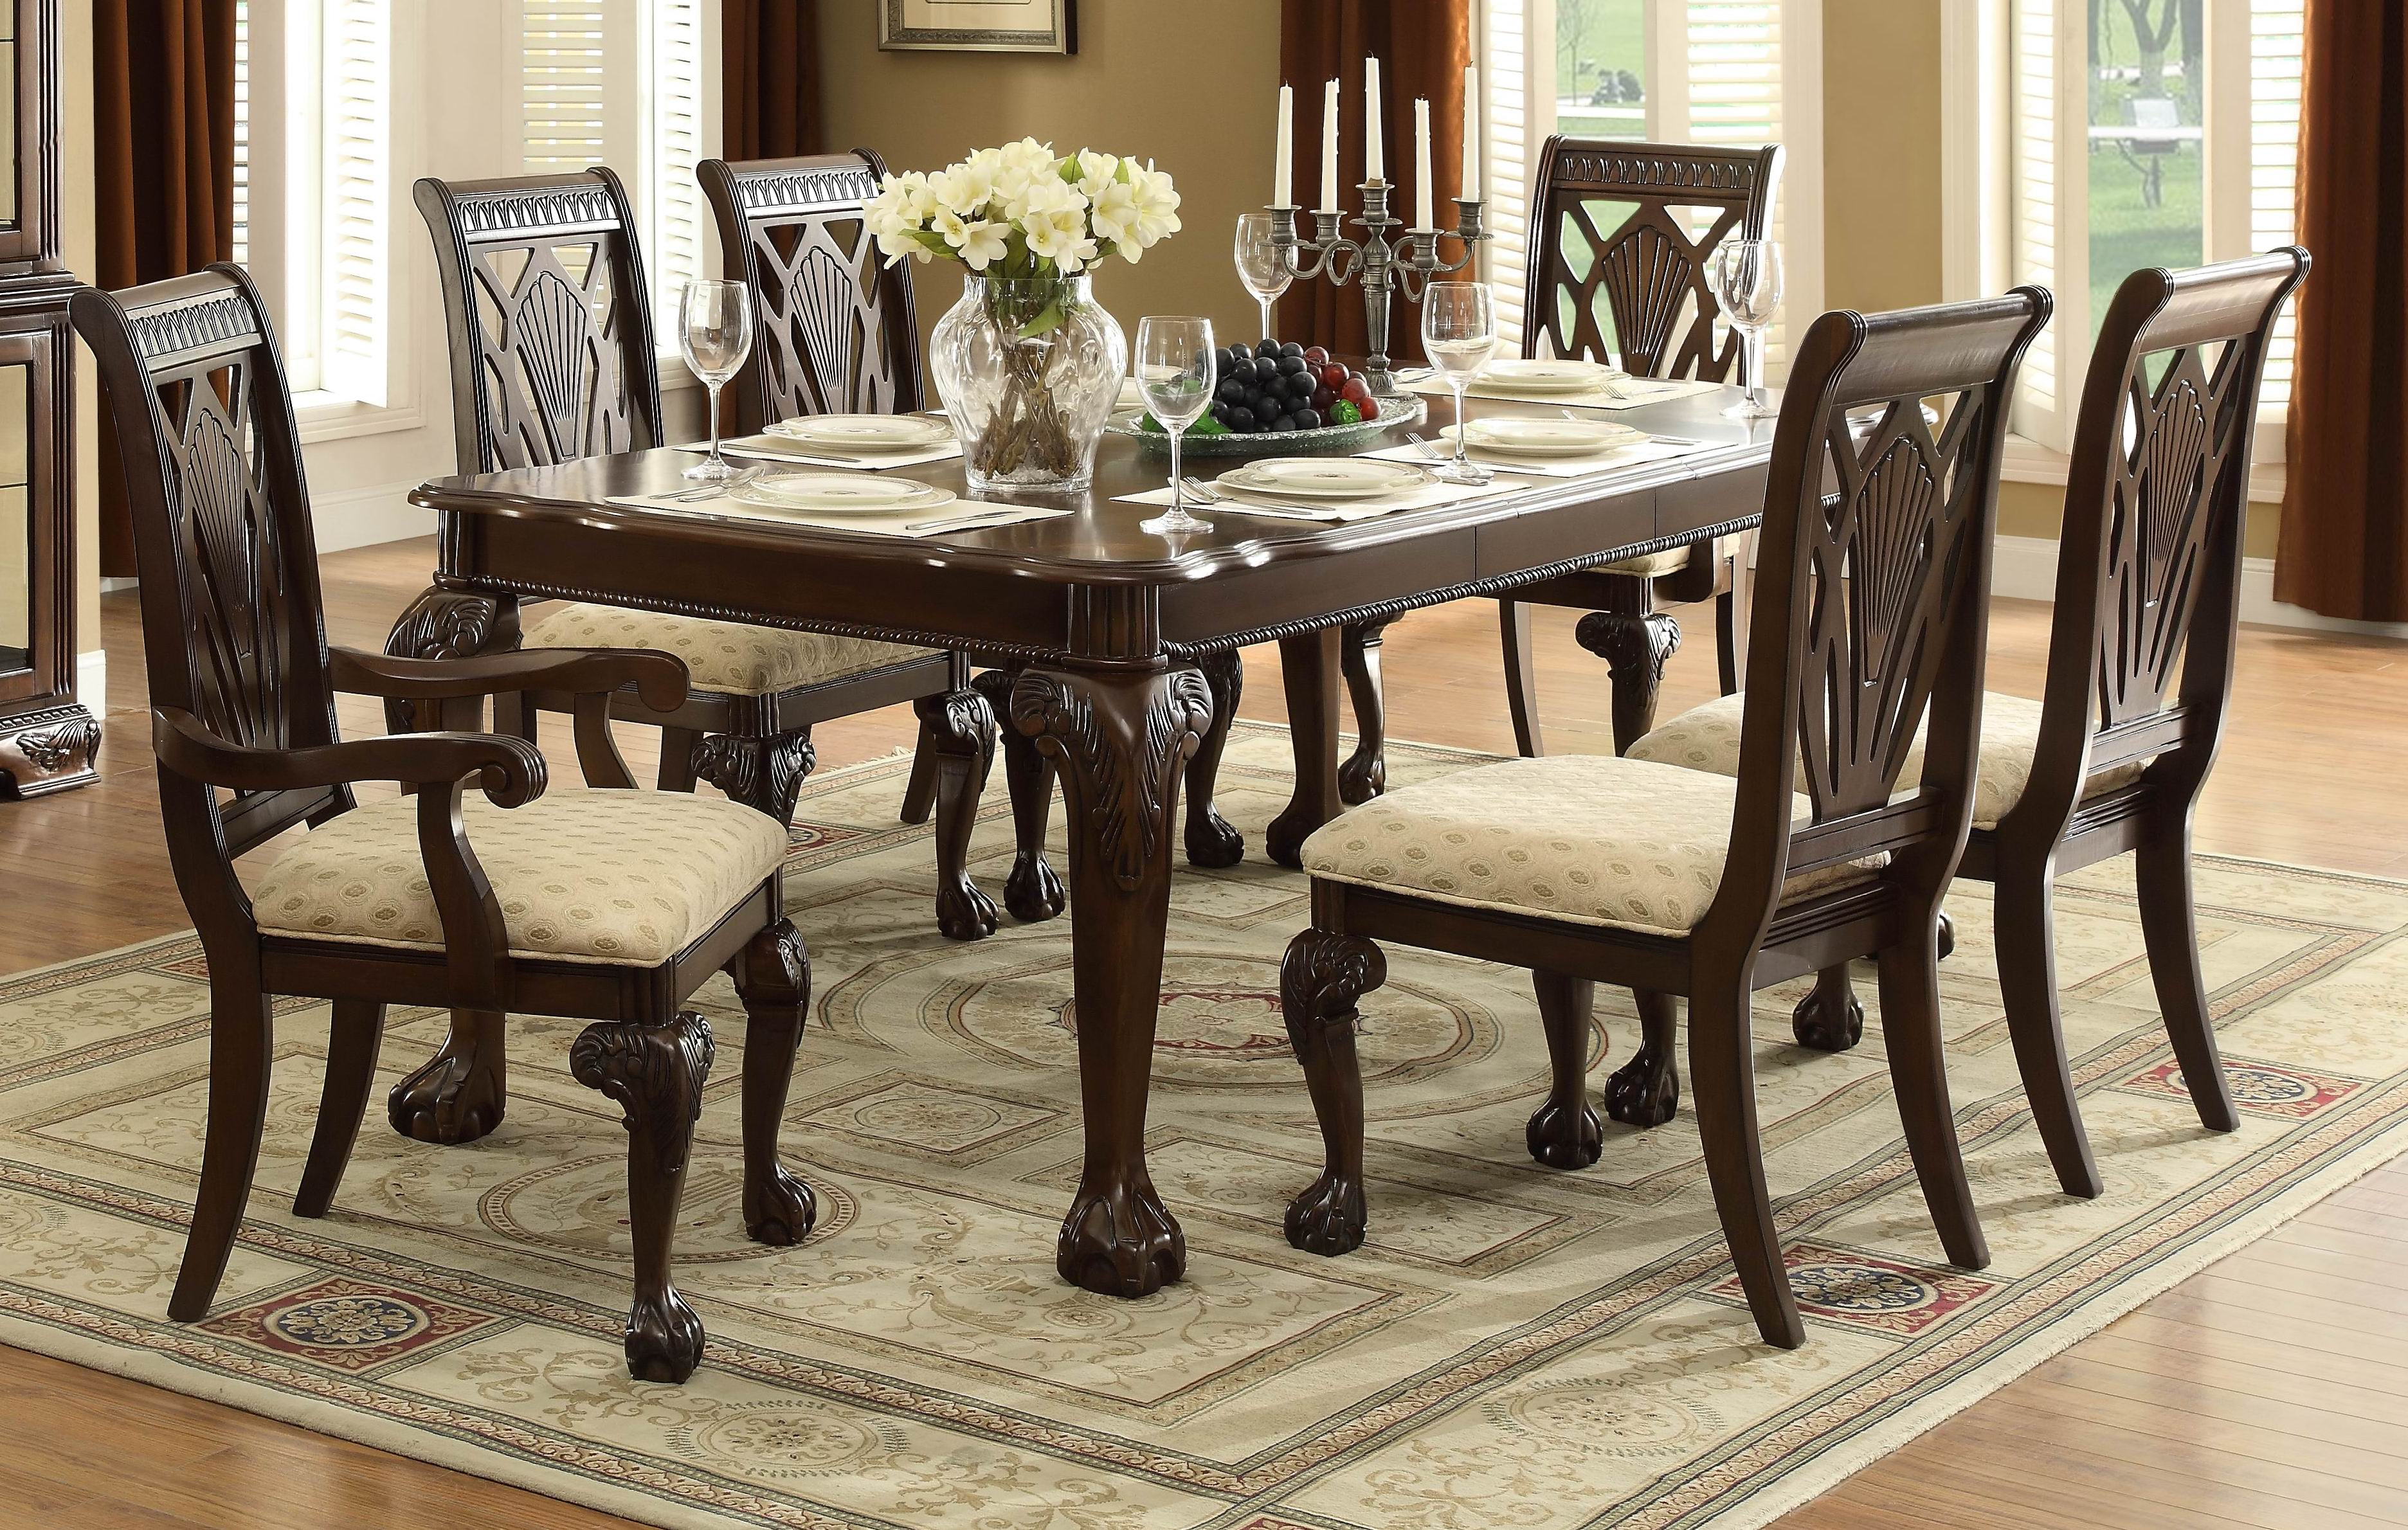 Awe Inspiring Norwich 5055 82 Traditional 7Pc Cherry Wood Leaf Dining Table Set Caraccident5 Cool Chair Designs And Ideas Caraccident5Info